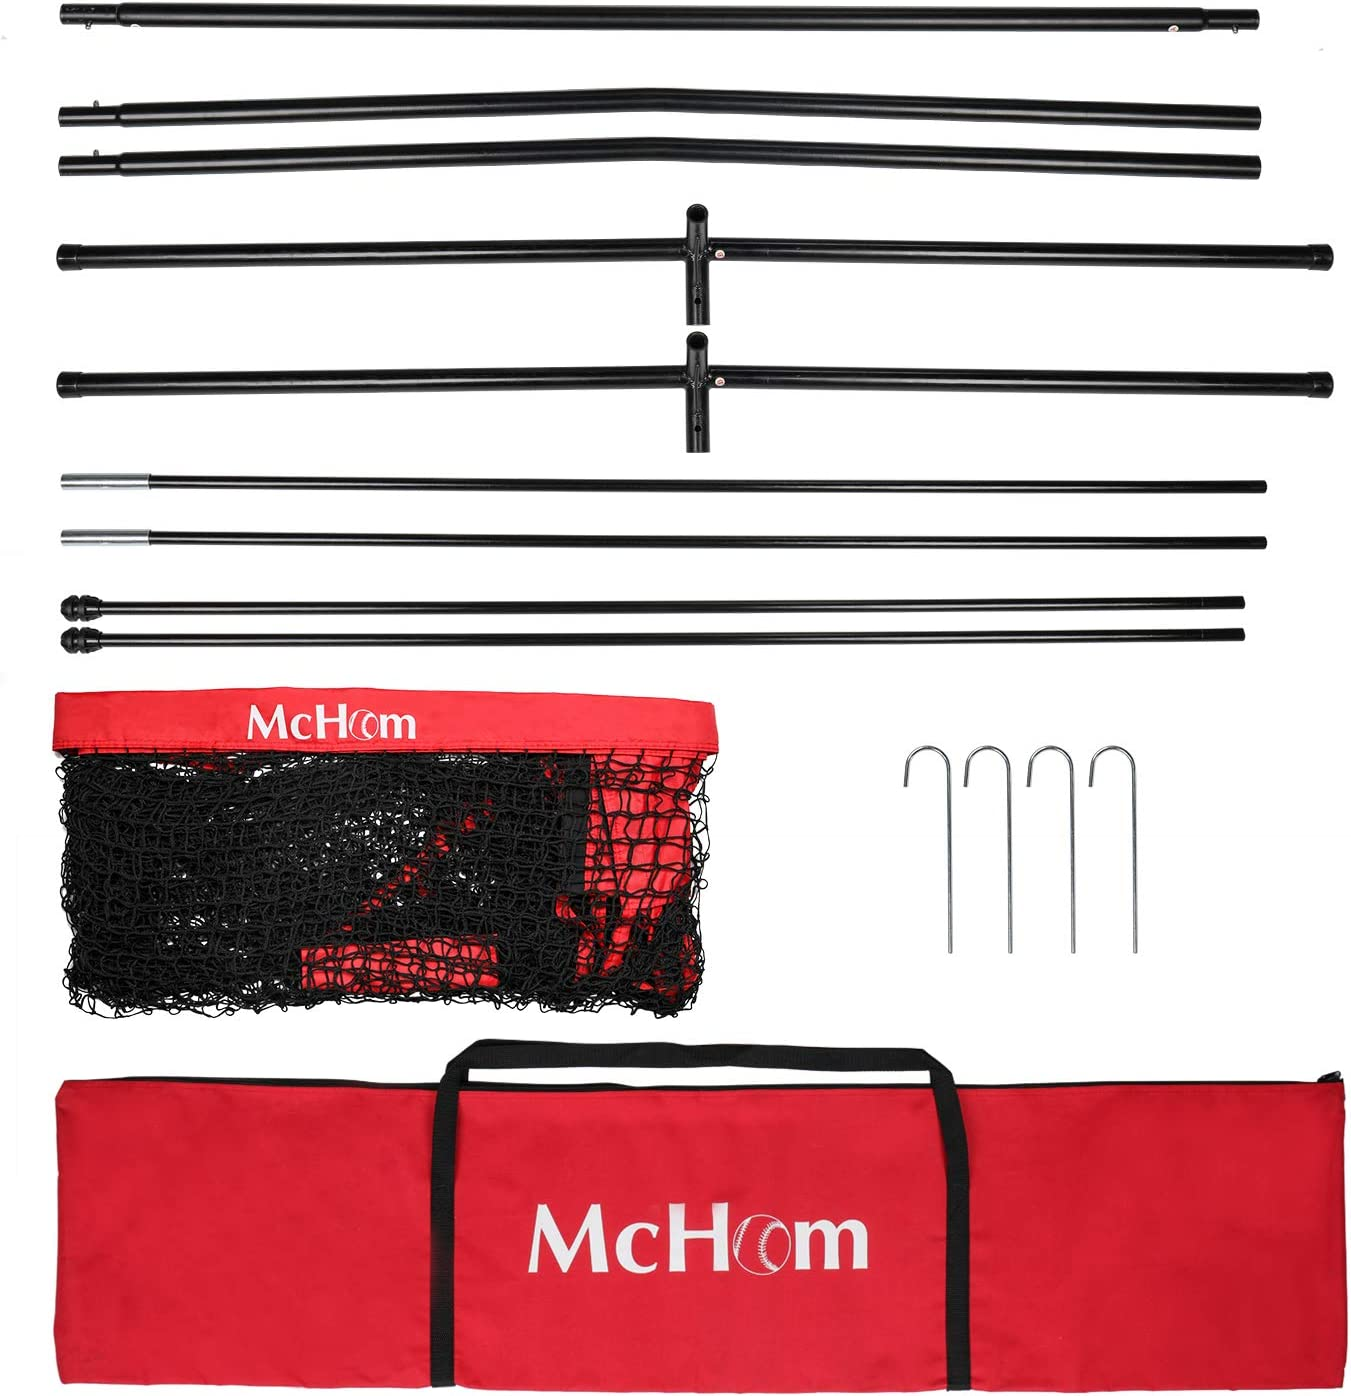 McHom 12ft x 9ft Sports Barrier Net   Backstop for Baseball, Softball, Soccer, Basketball, Lacrosse and Field Hockey   Collapsible and Portable : Sports & Outdoors